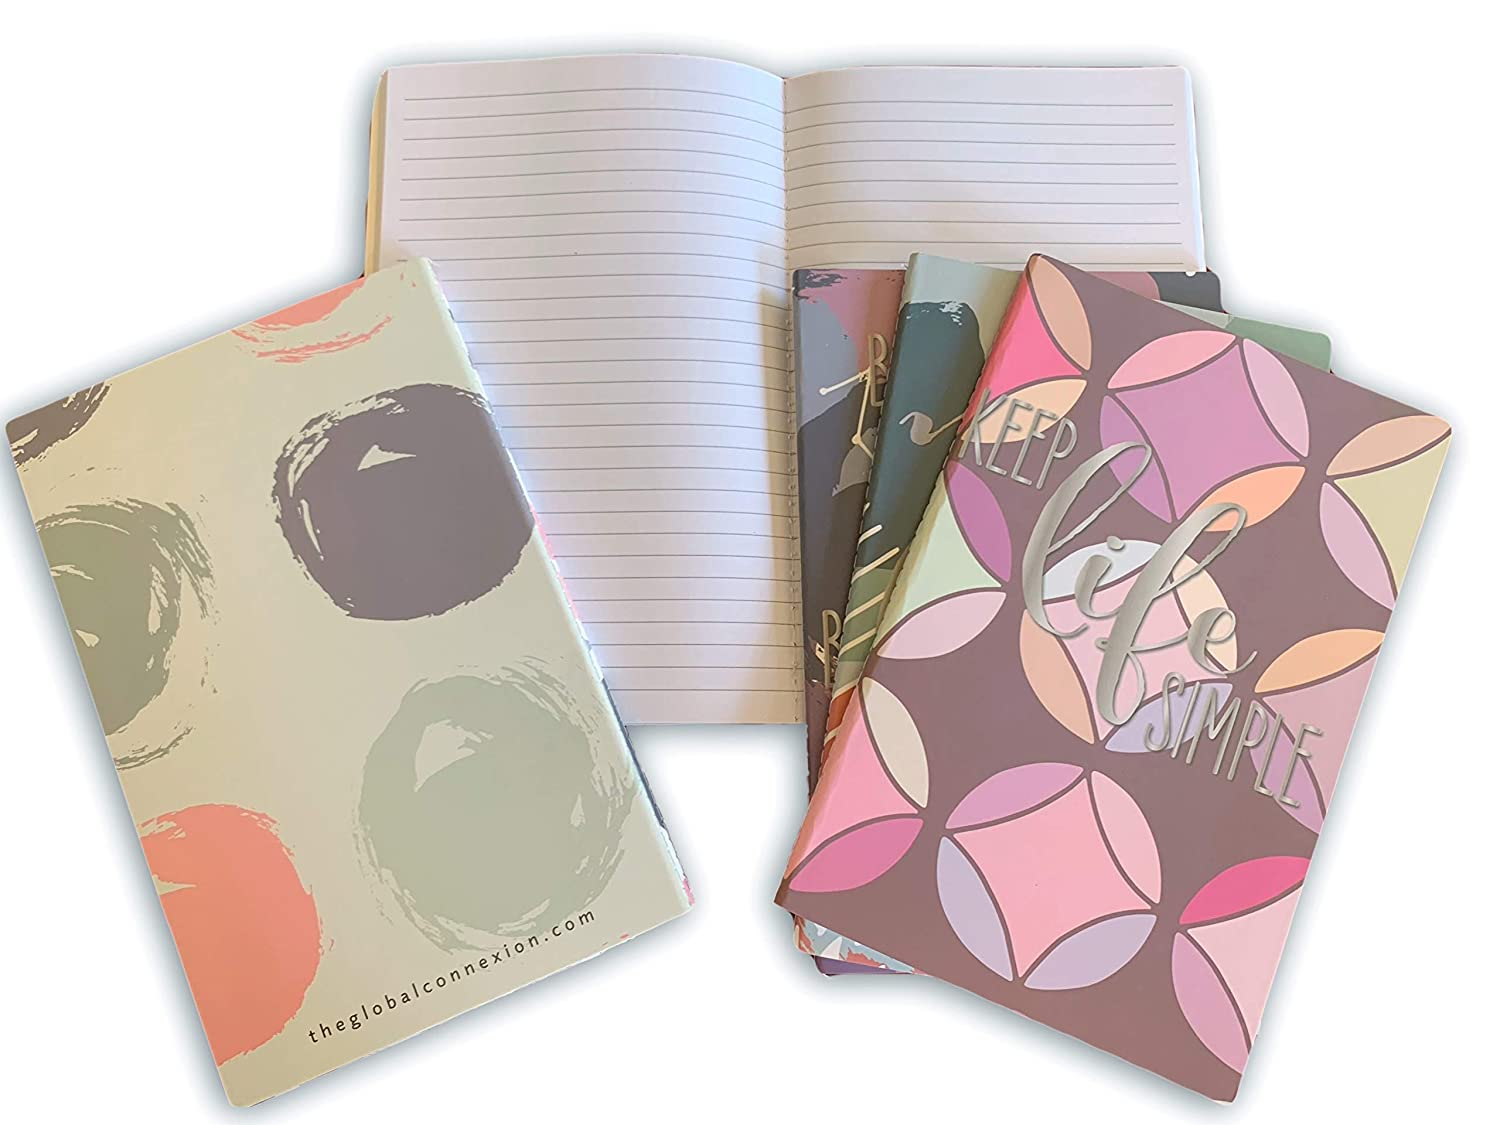 Assorted Patterns College Ruled 8x5 A5 Paper for Field Notes or Small Lined Cute Journals to Write in for Women Girls or Teens 6-Pack of Mini Softcover Pocket Notebooks//Journals//Notepads//Diary